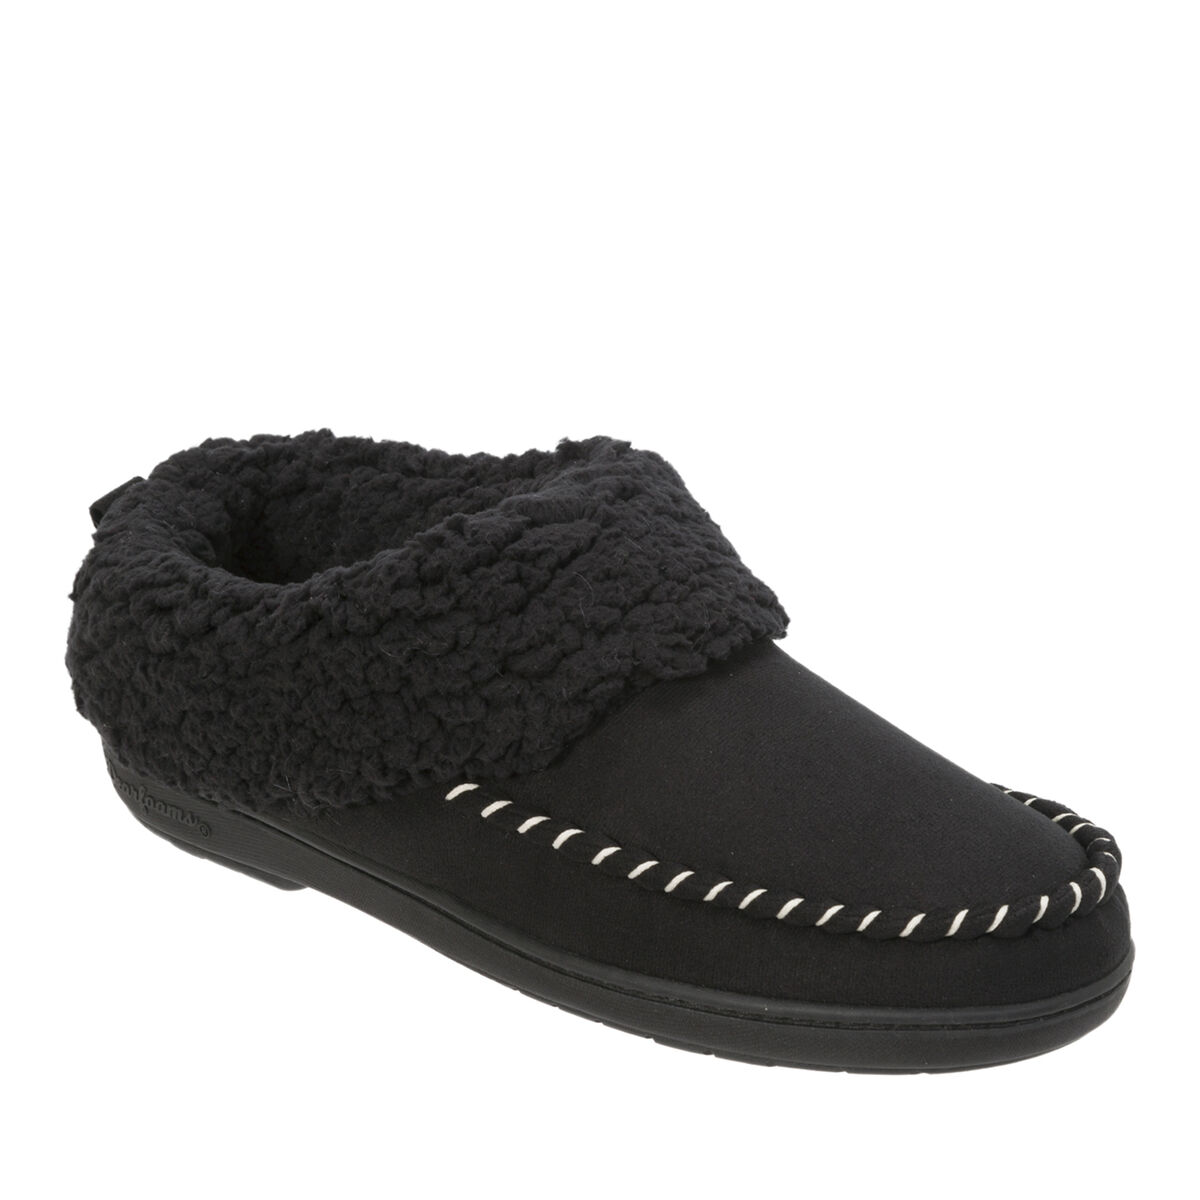 Women's Microsuede Clog Slipper with Whipstitch